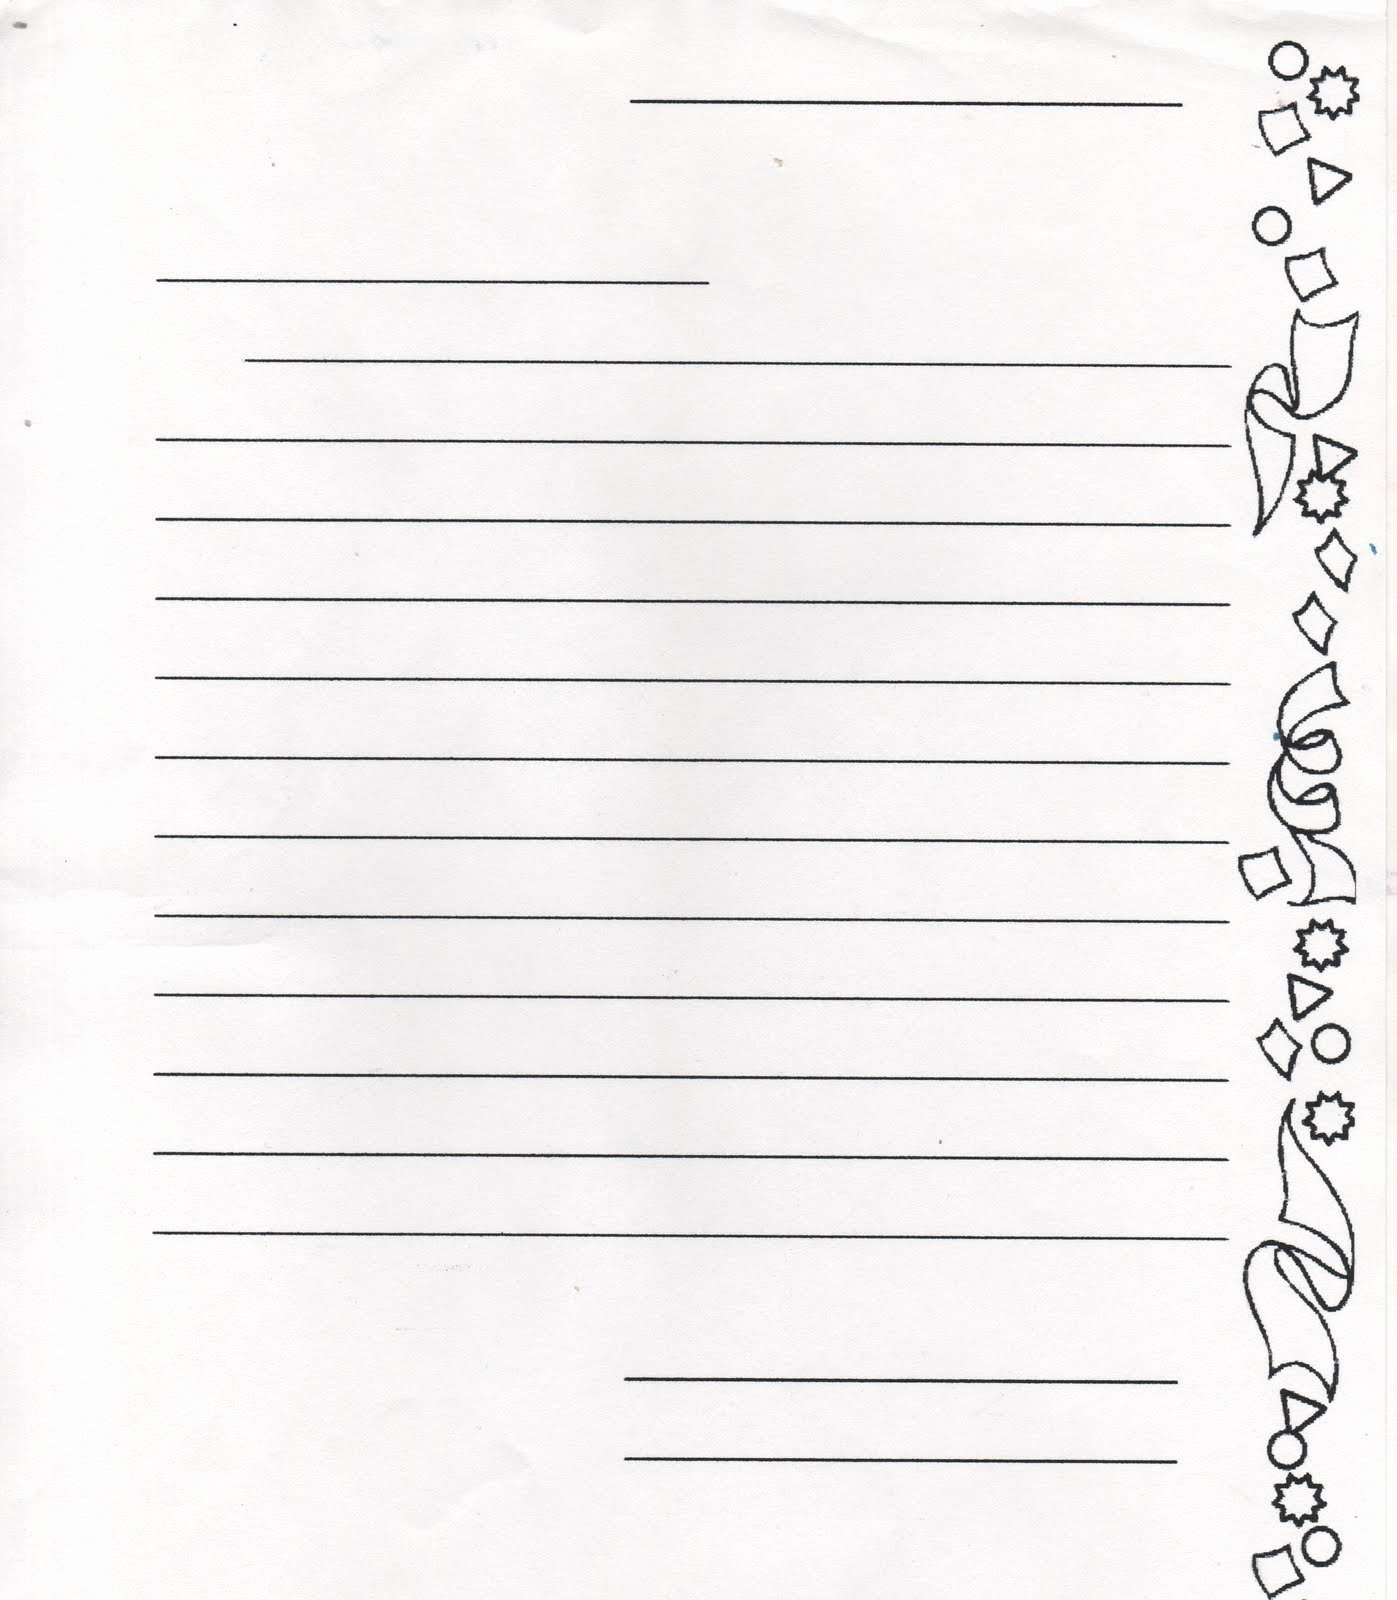 Pen Pal Letter Template Beautiful Elementary School Enrichment Activities Pen Pal Ideas